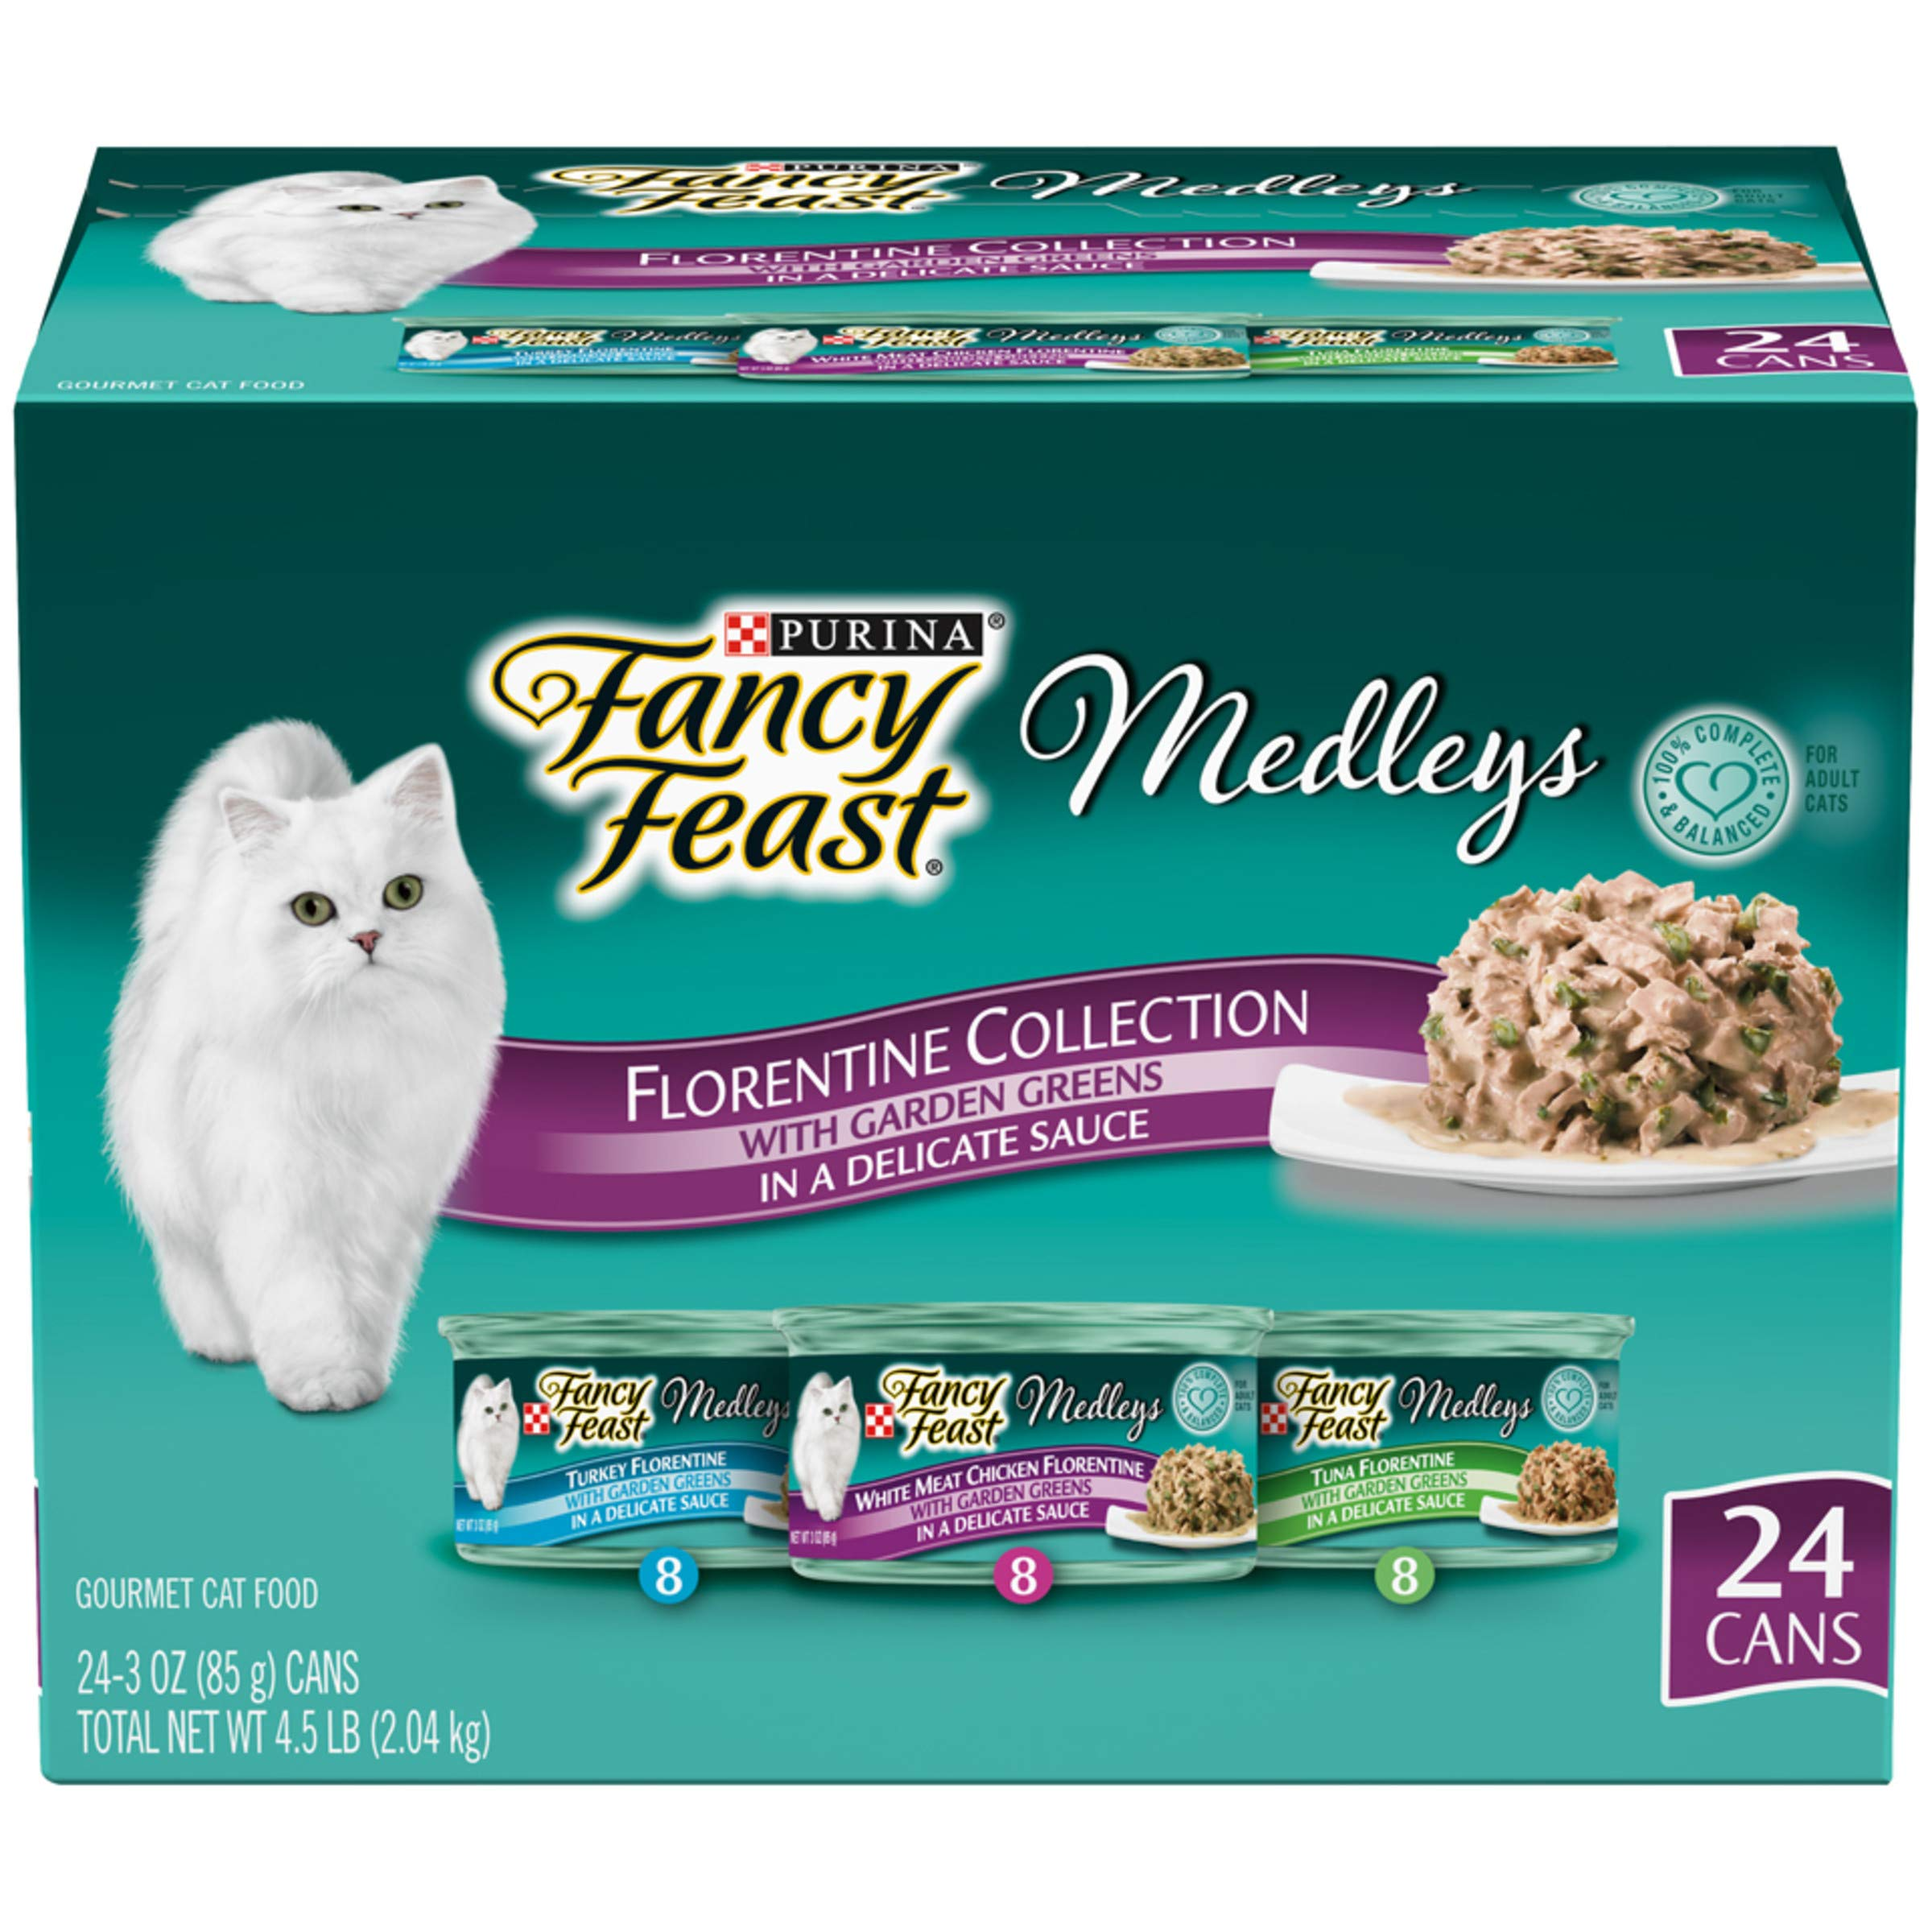 Purina Fancy Feast Gravy Wet Cat Food Variety Pack, Medleys Florentine Collection - (24) 3 oz. Cans by Purina Fancy Feast